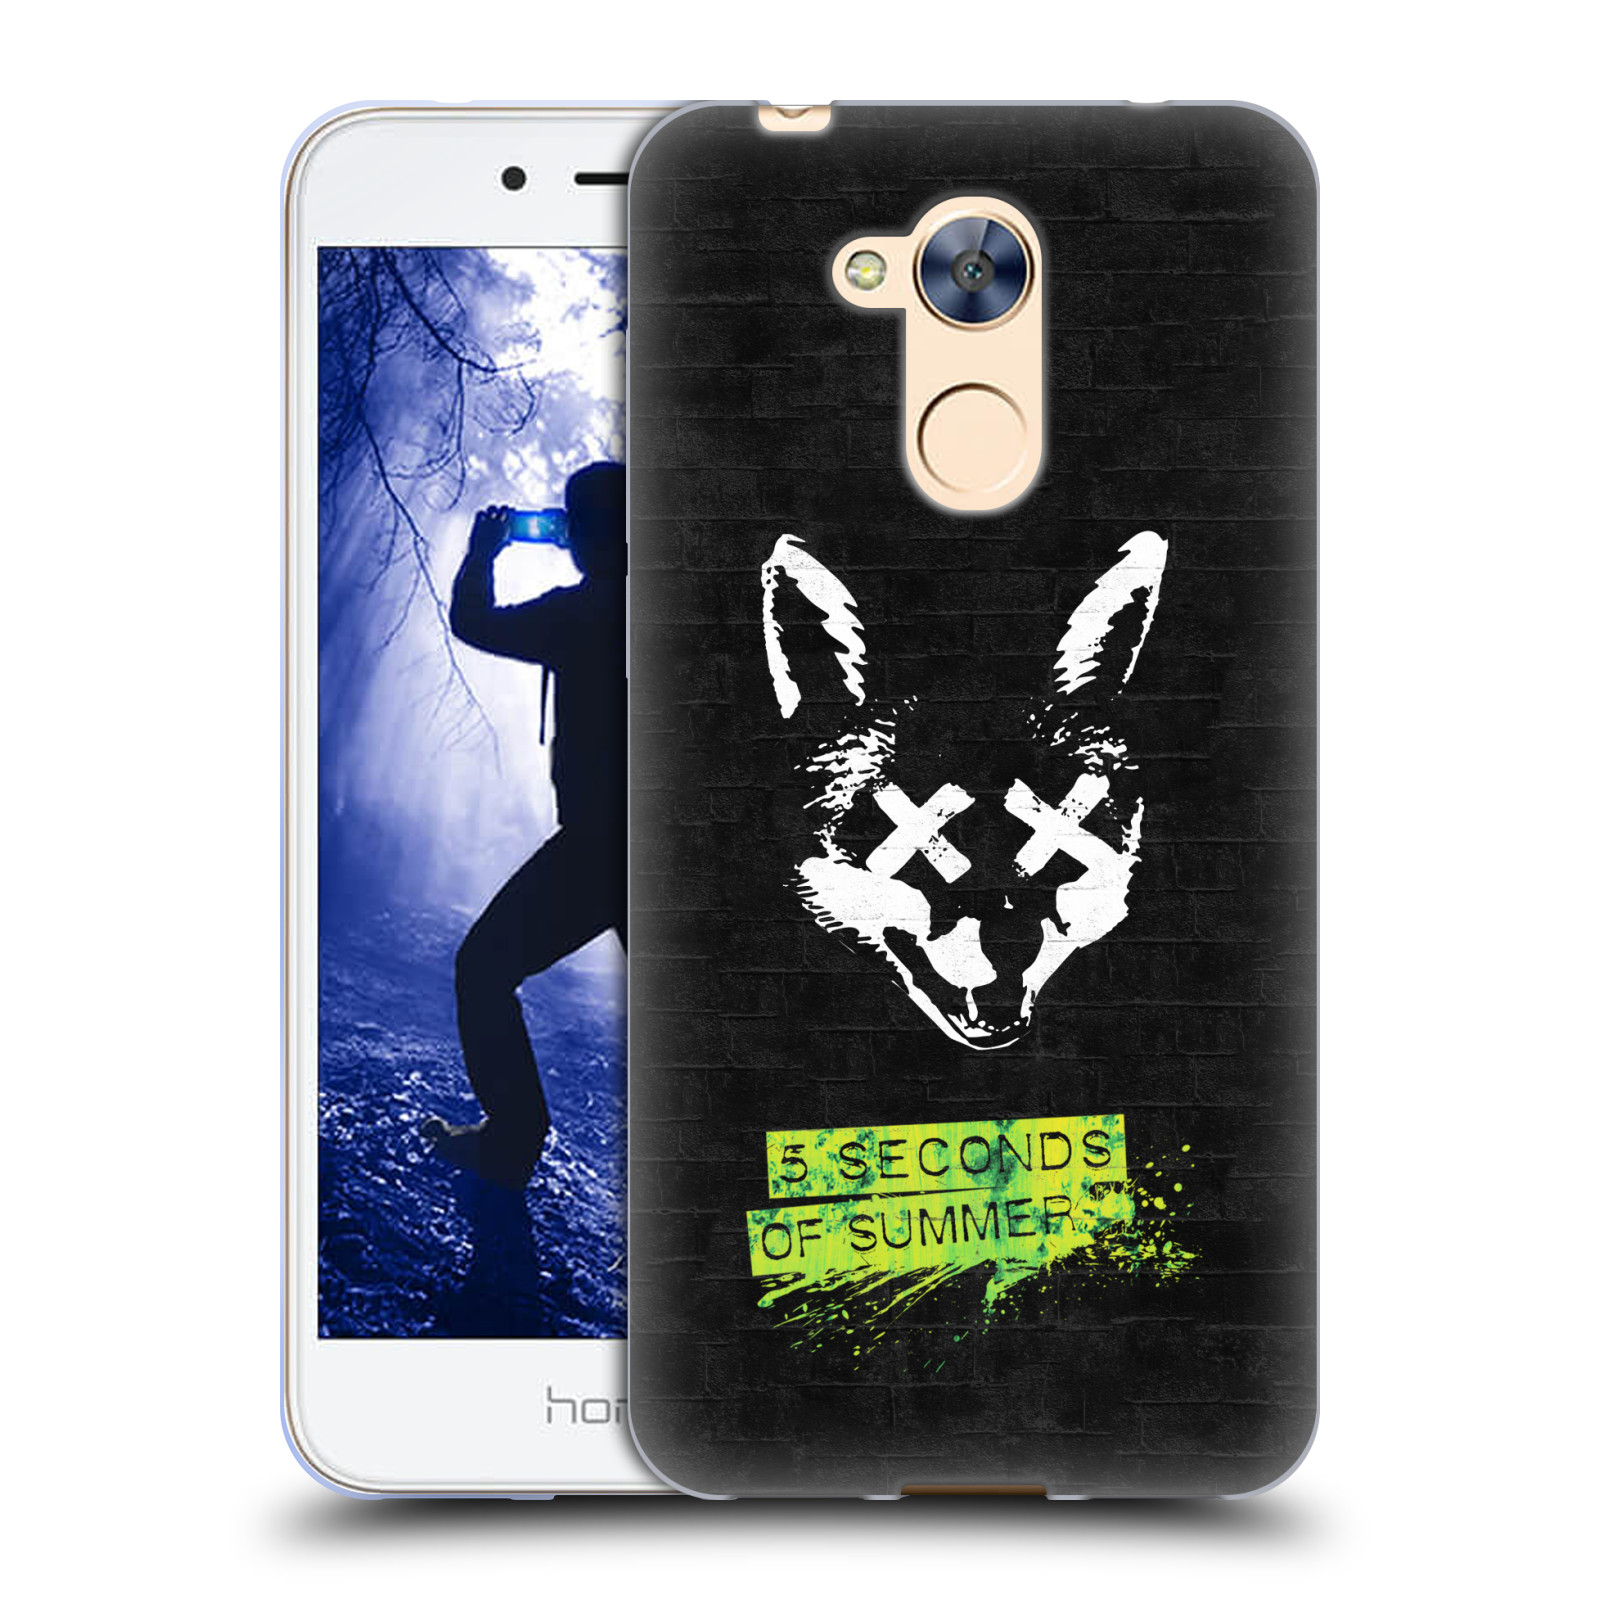 Silikonové pouzdro na mobil Honor 6A - Head Case - 5 Seconds of Summer - Fox